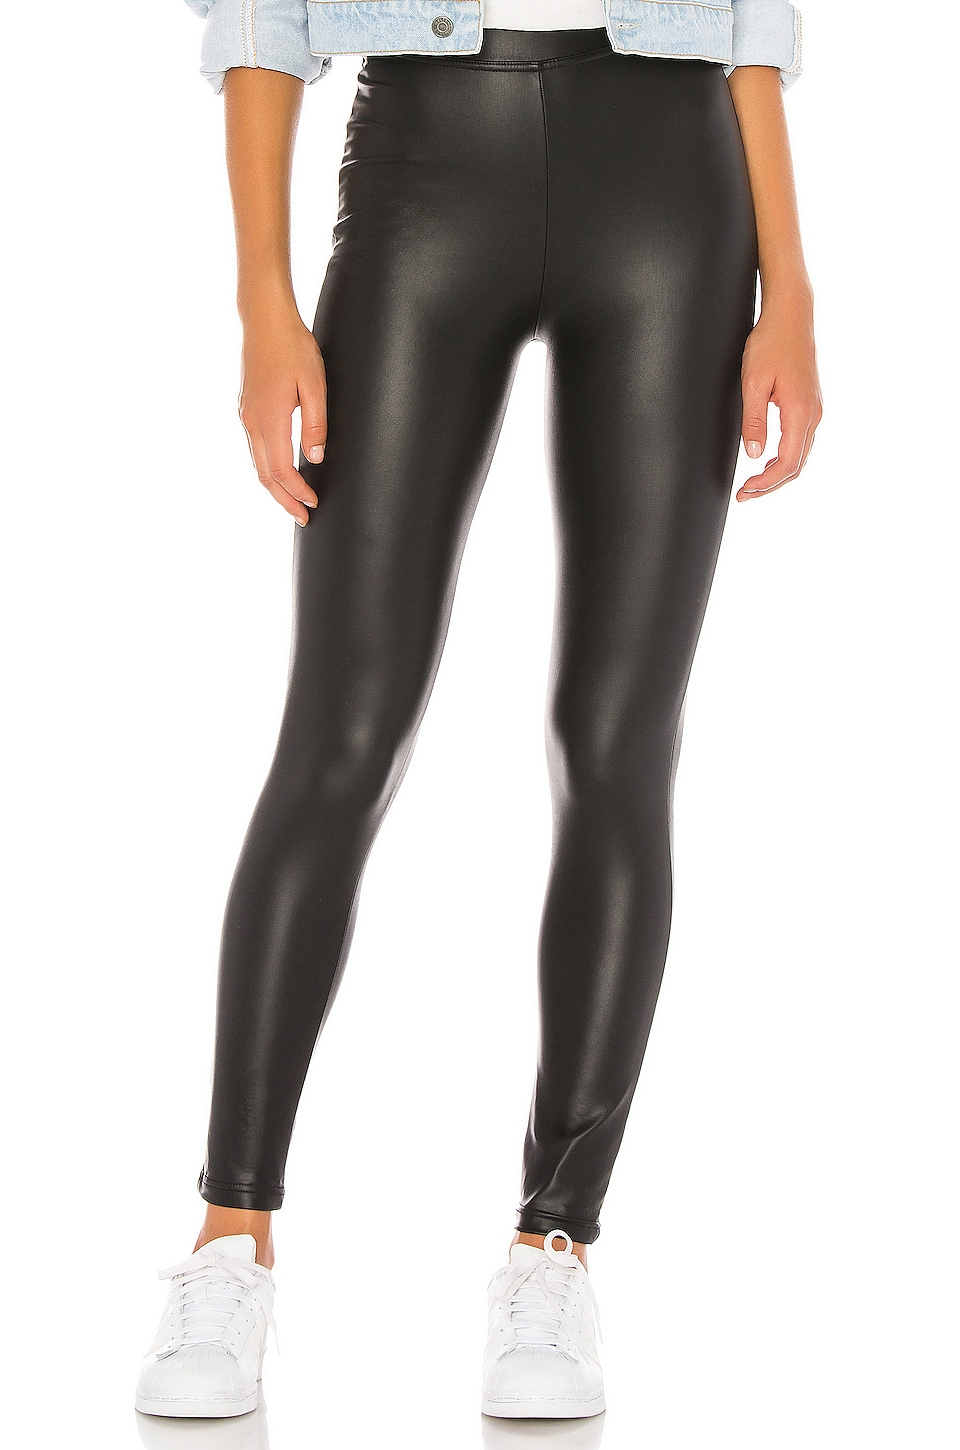 Plush Fleece Lined High Waisted Liquid Legging en Black